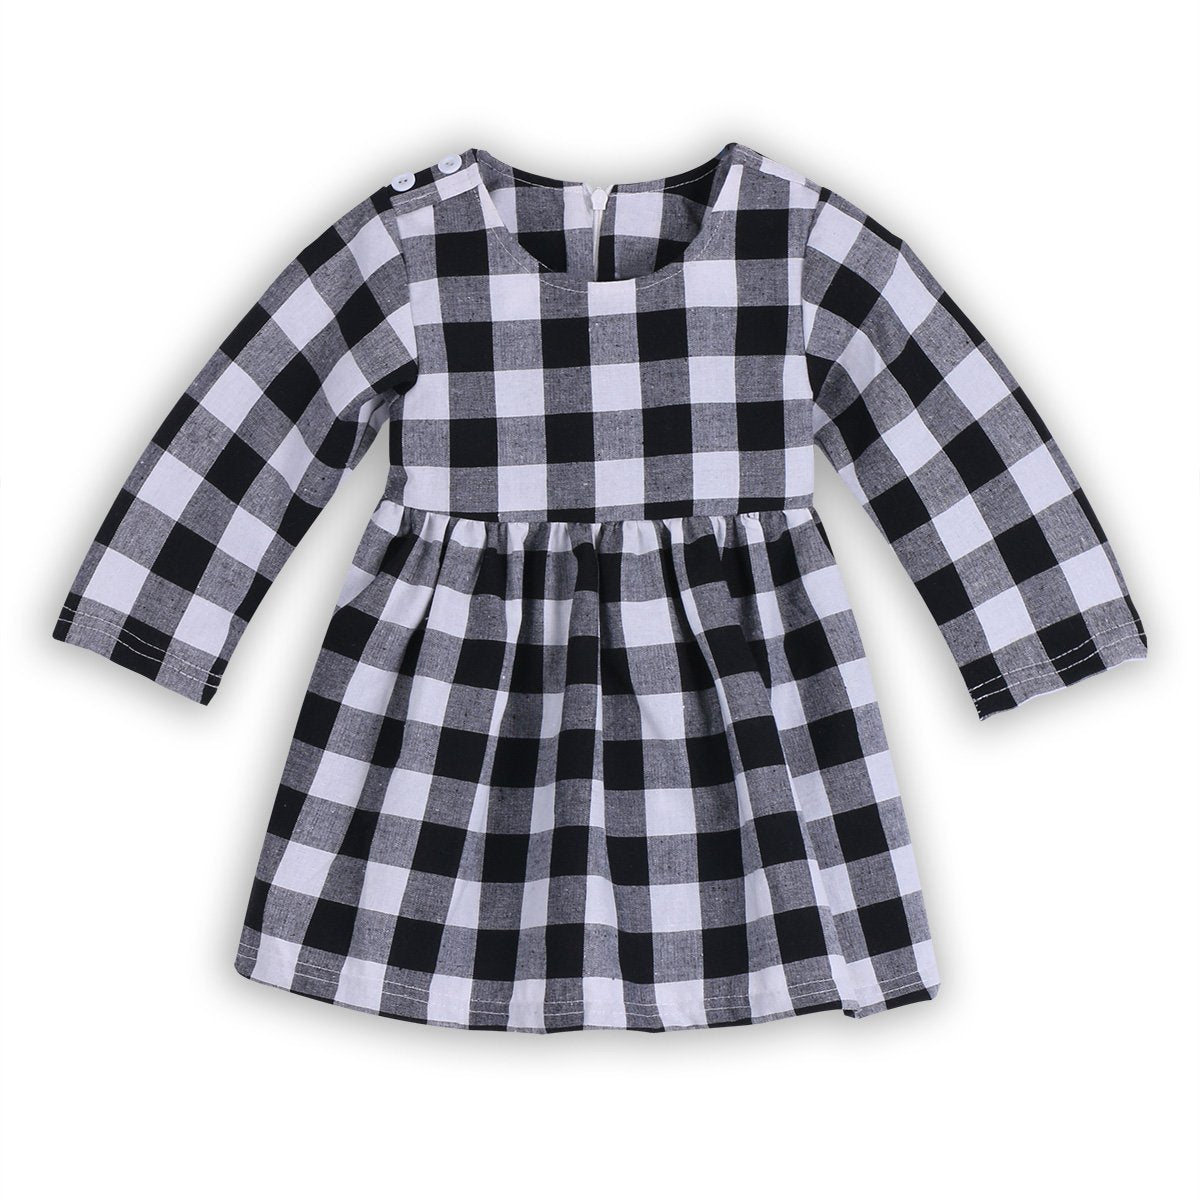 2017 Autumn Spring Style New Fashion Black White Plaid Girl Dresses long Sleeve Baby Kids Clothing Casual Girl Dress Vestidos